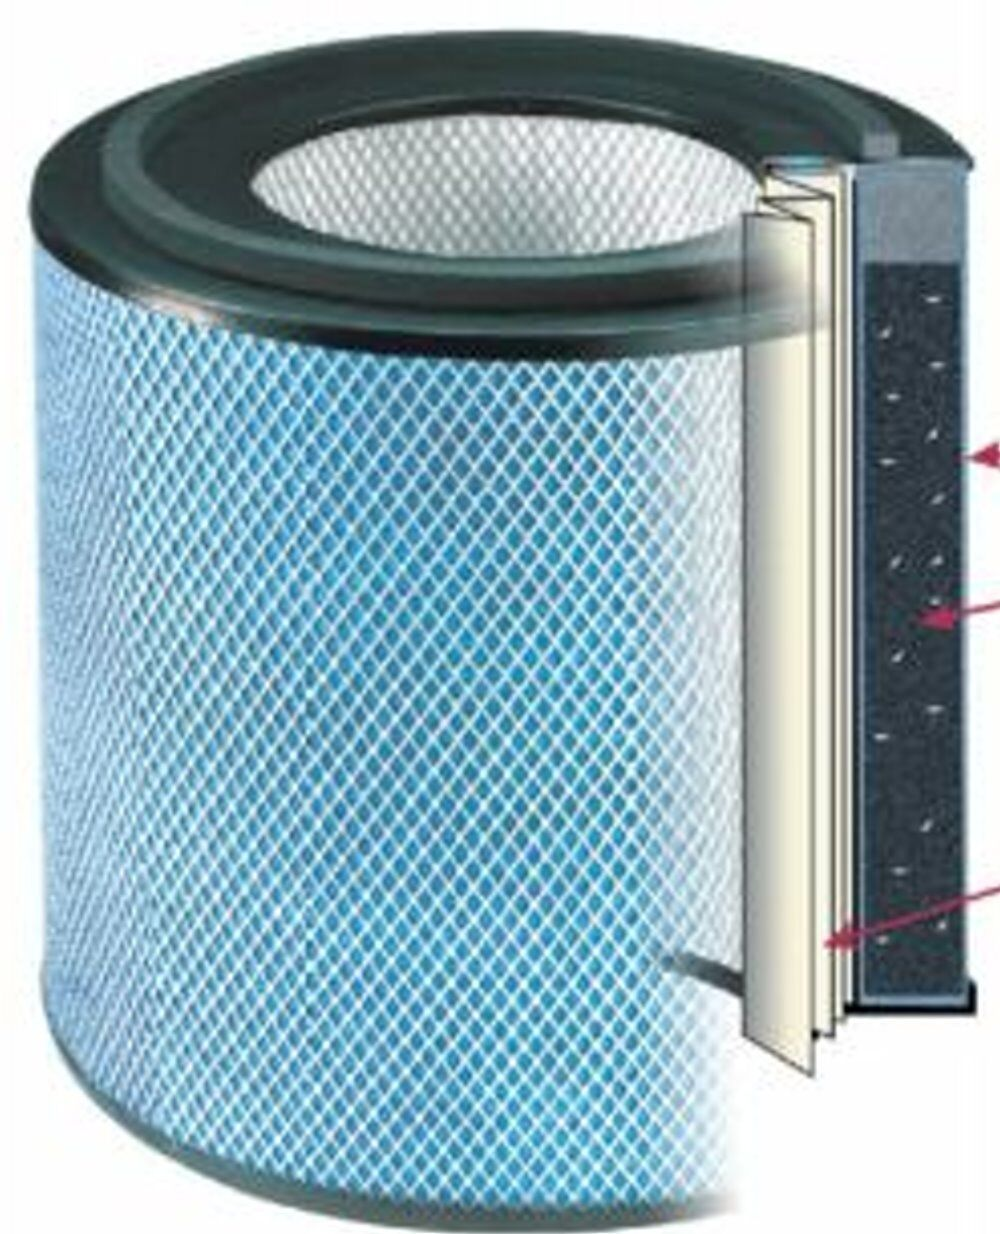 Replacement filter for HEALTHMATE JR by Austin Air